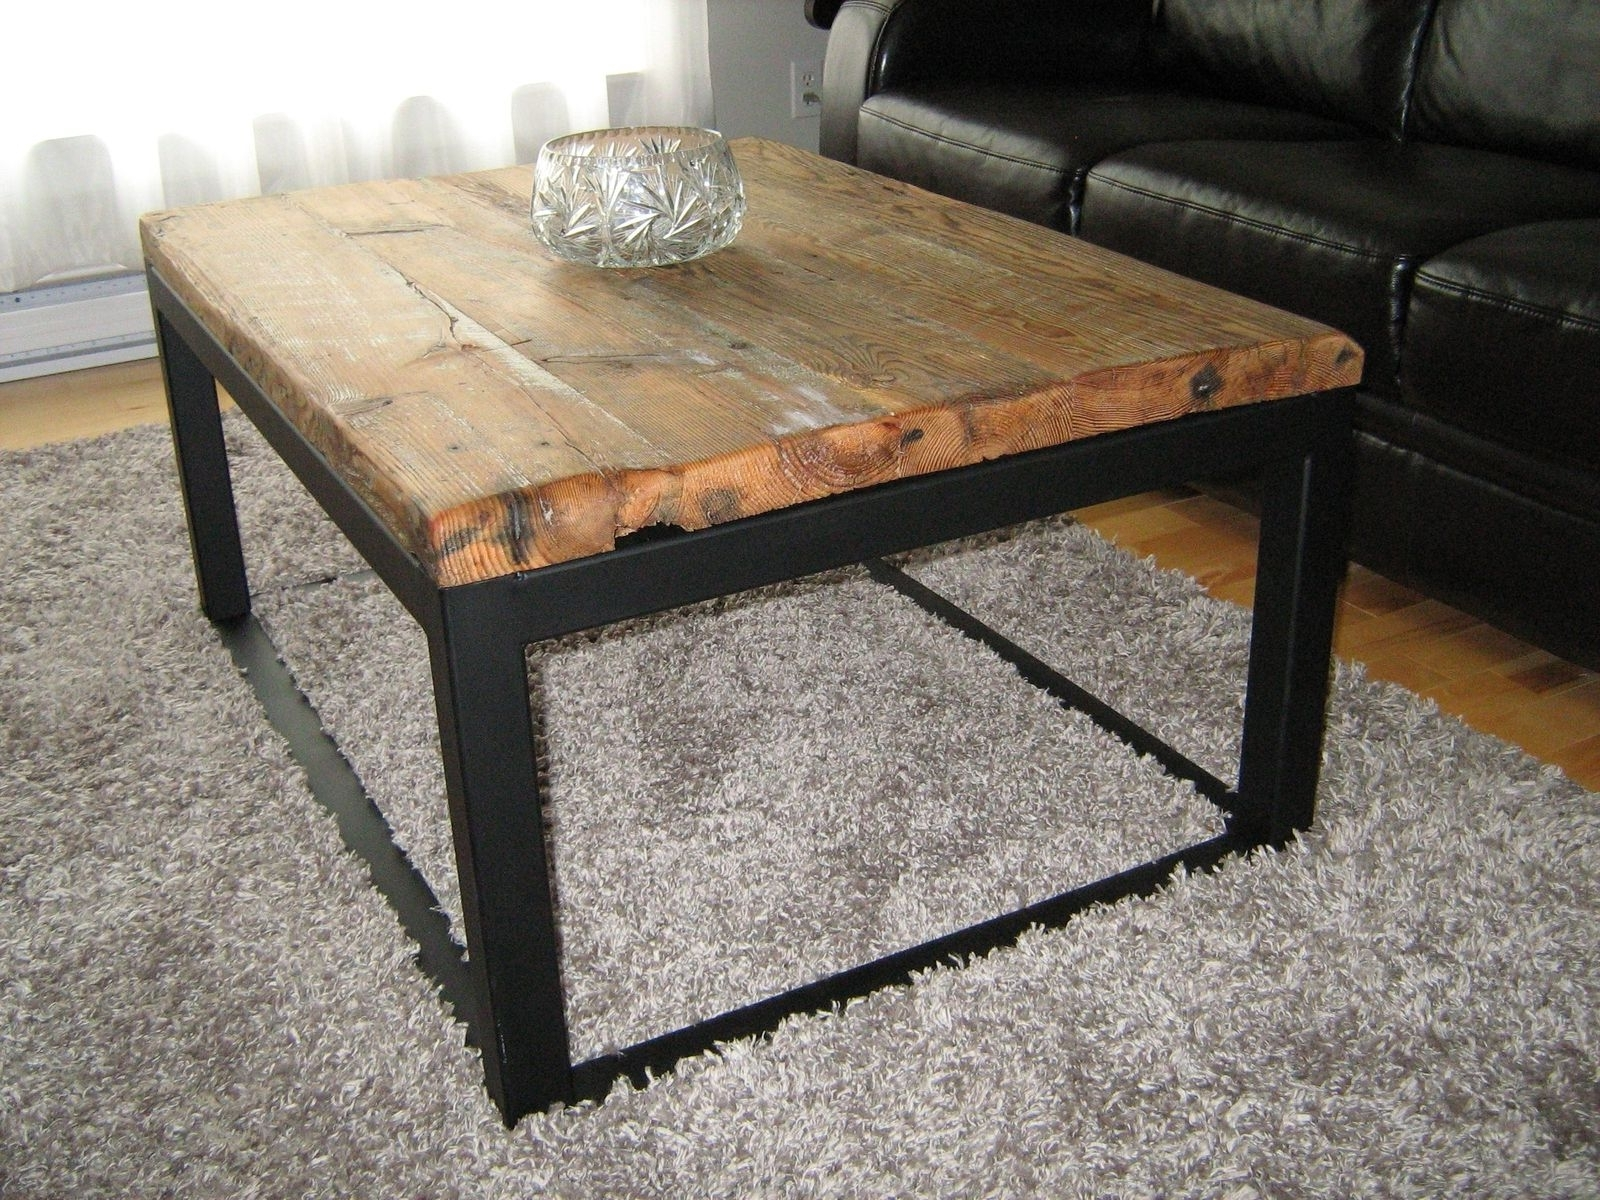 Wood And Metal Coffee Table Awesome – Thelightlaughed Within Preferred Iron Wood Coffee Tables With Wheels (View 9 of 20)